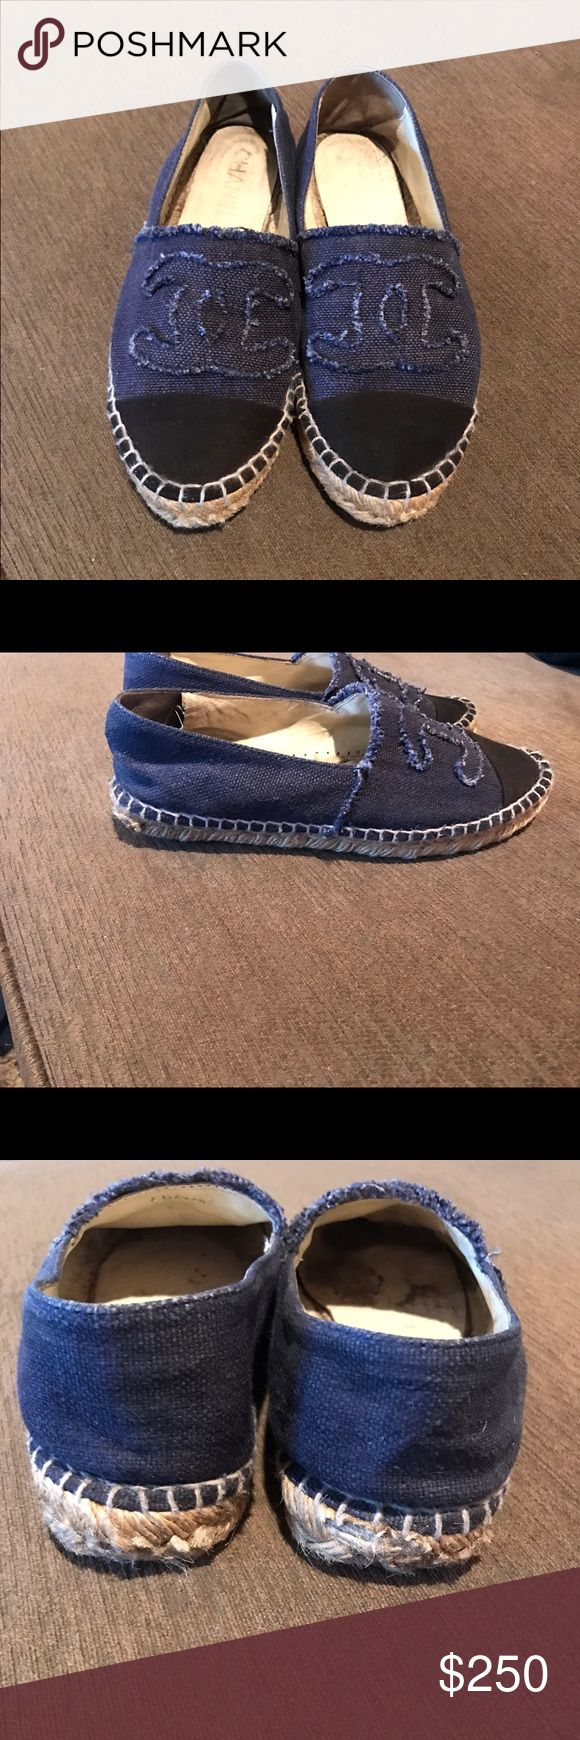 Chanel espadrilles Chanel Espadrilles authentic denim with black toe size37 these have wear on sole and bottom edge  as shown in pics and a crack on one side on bottom but very good condition on top these are not perfect as price reflects. There still is life in them and also can be taken to a cobbler to be fixed CHANEL Shoes Espadrilles